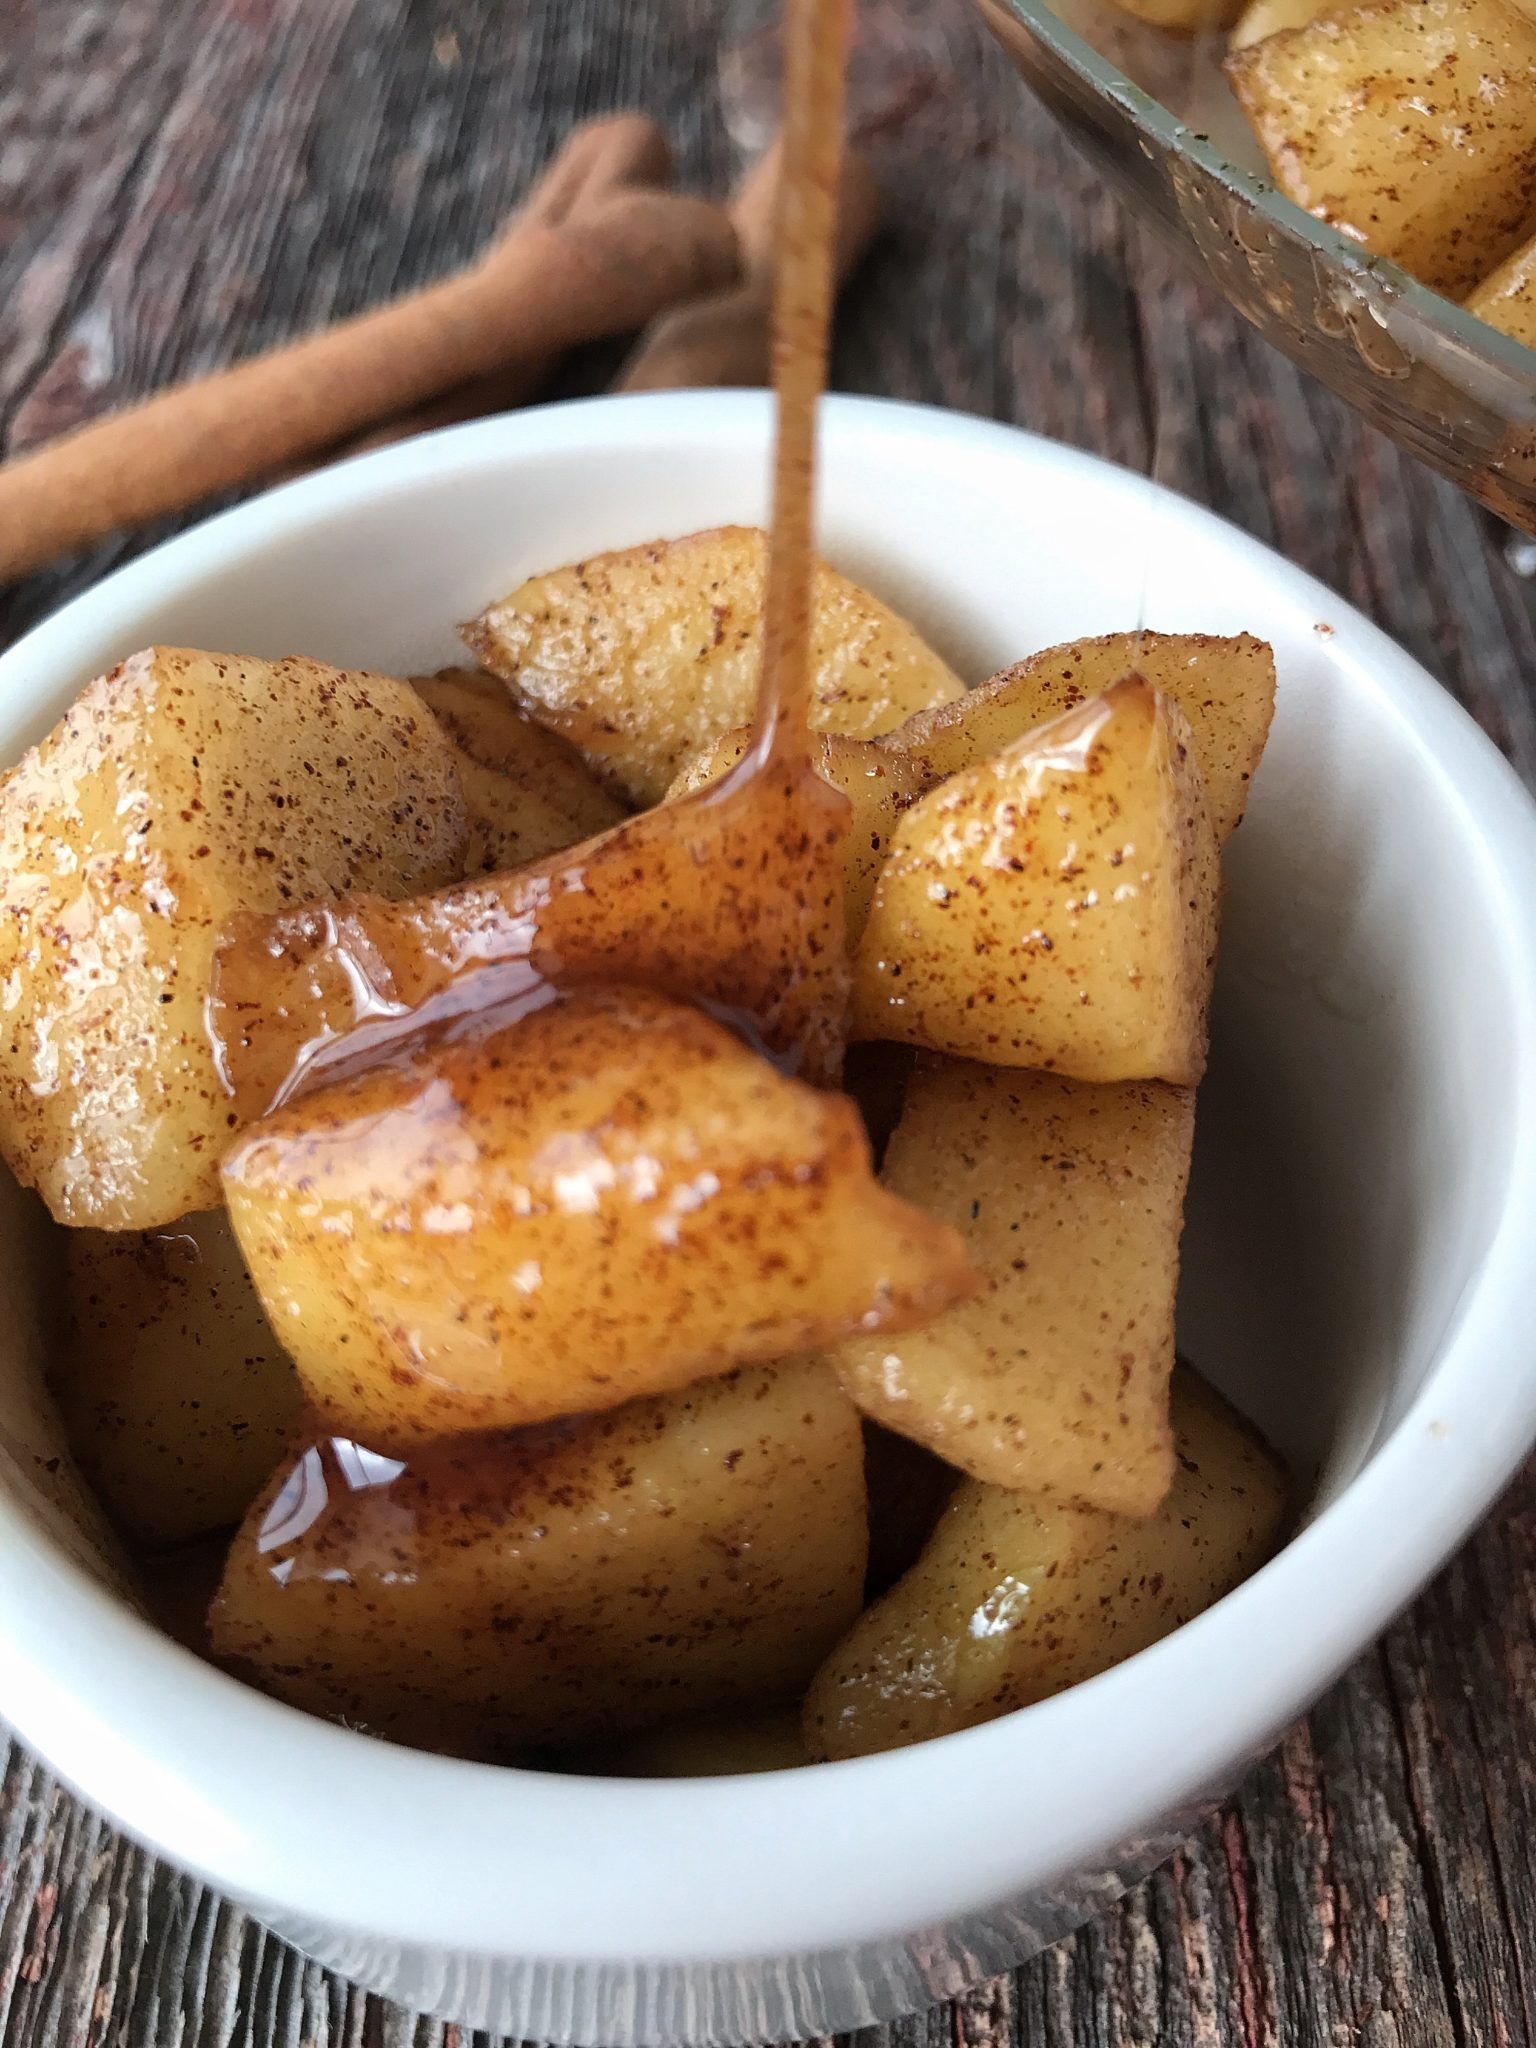 10 minute desserts Baked Apples are an apple dessert that